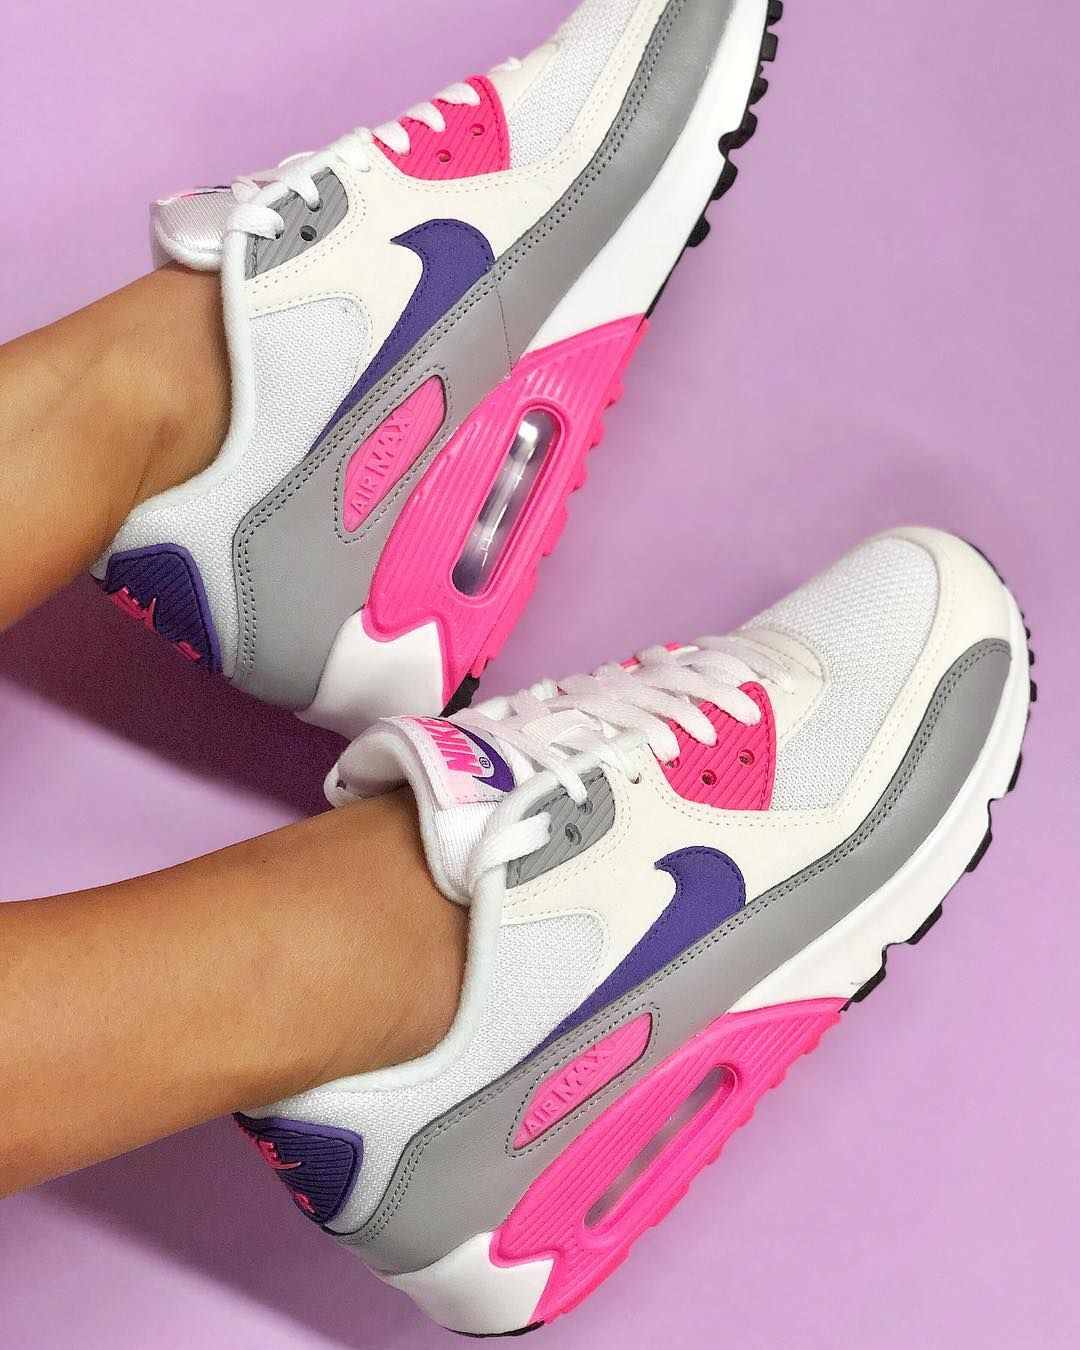 5dbae613b5496 We take a look at this classic Nike Air Max 90 women's shoe in a winning  colour combination of white, purple, grey and pink.